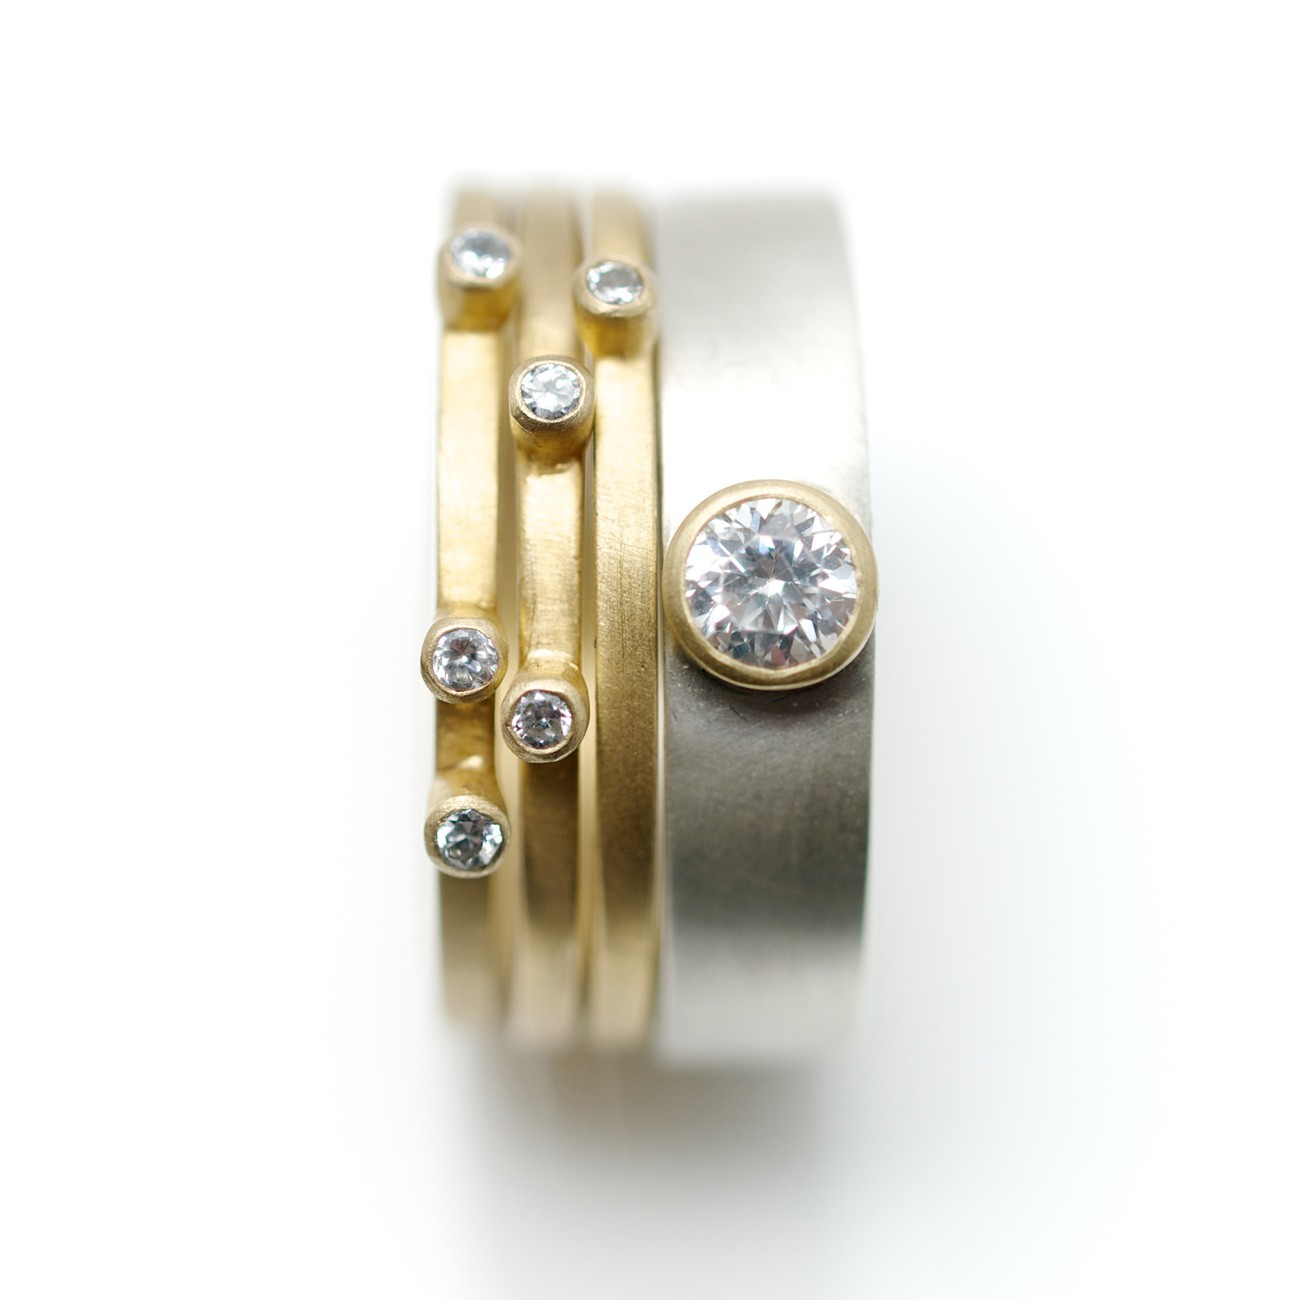 Square 18ct Gold Stacking Rings With Scattered Diamonds